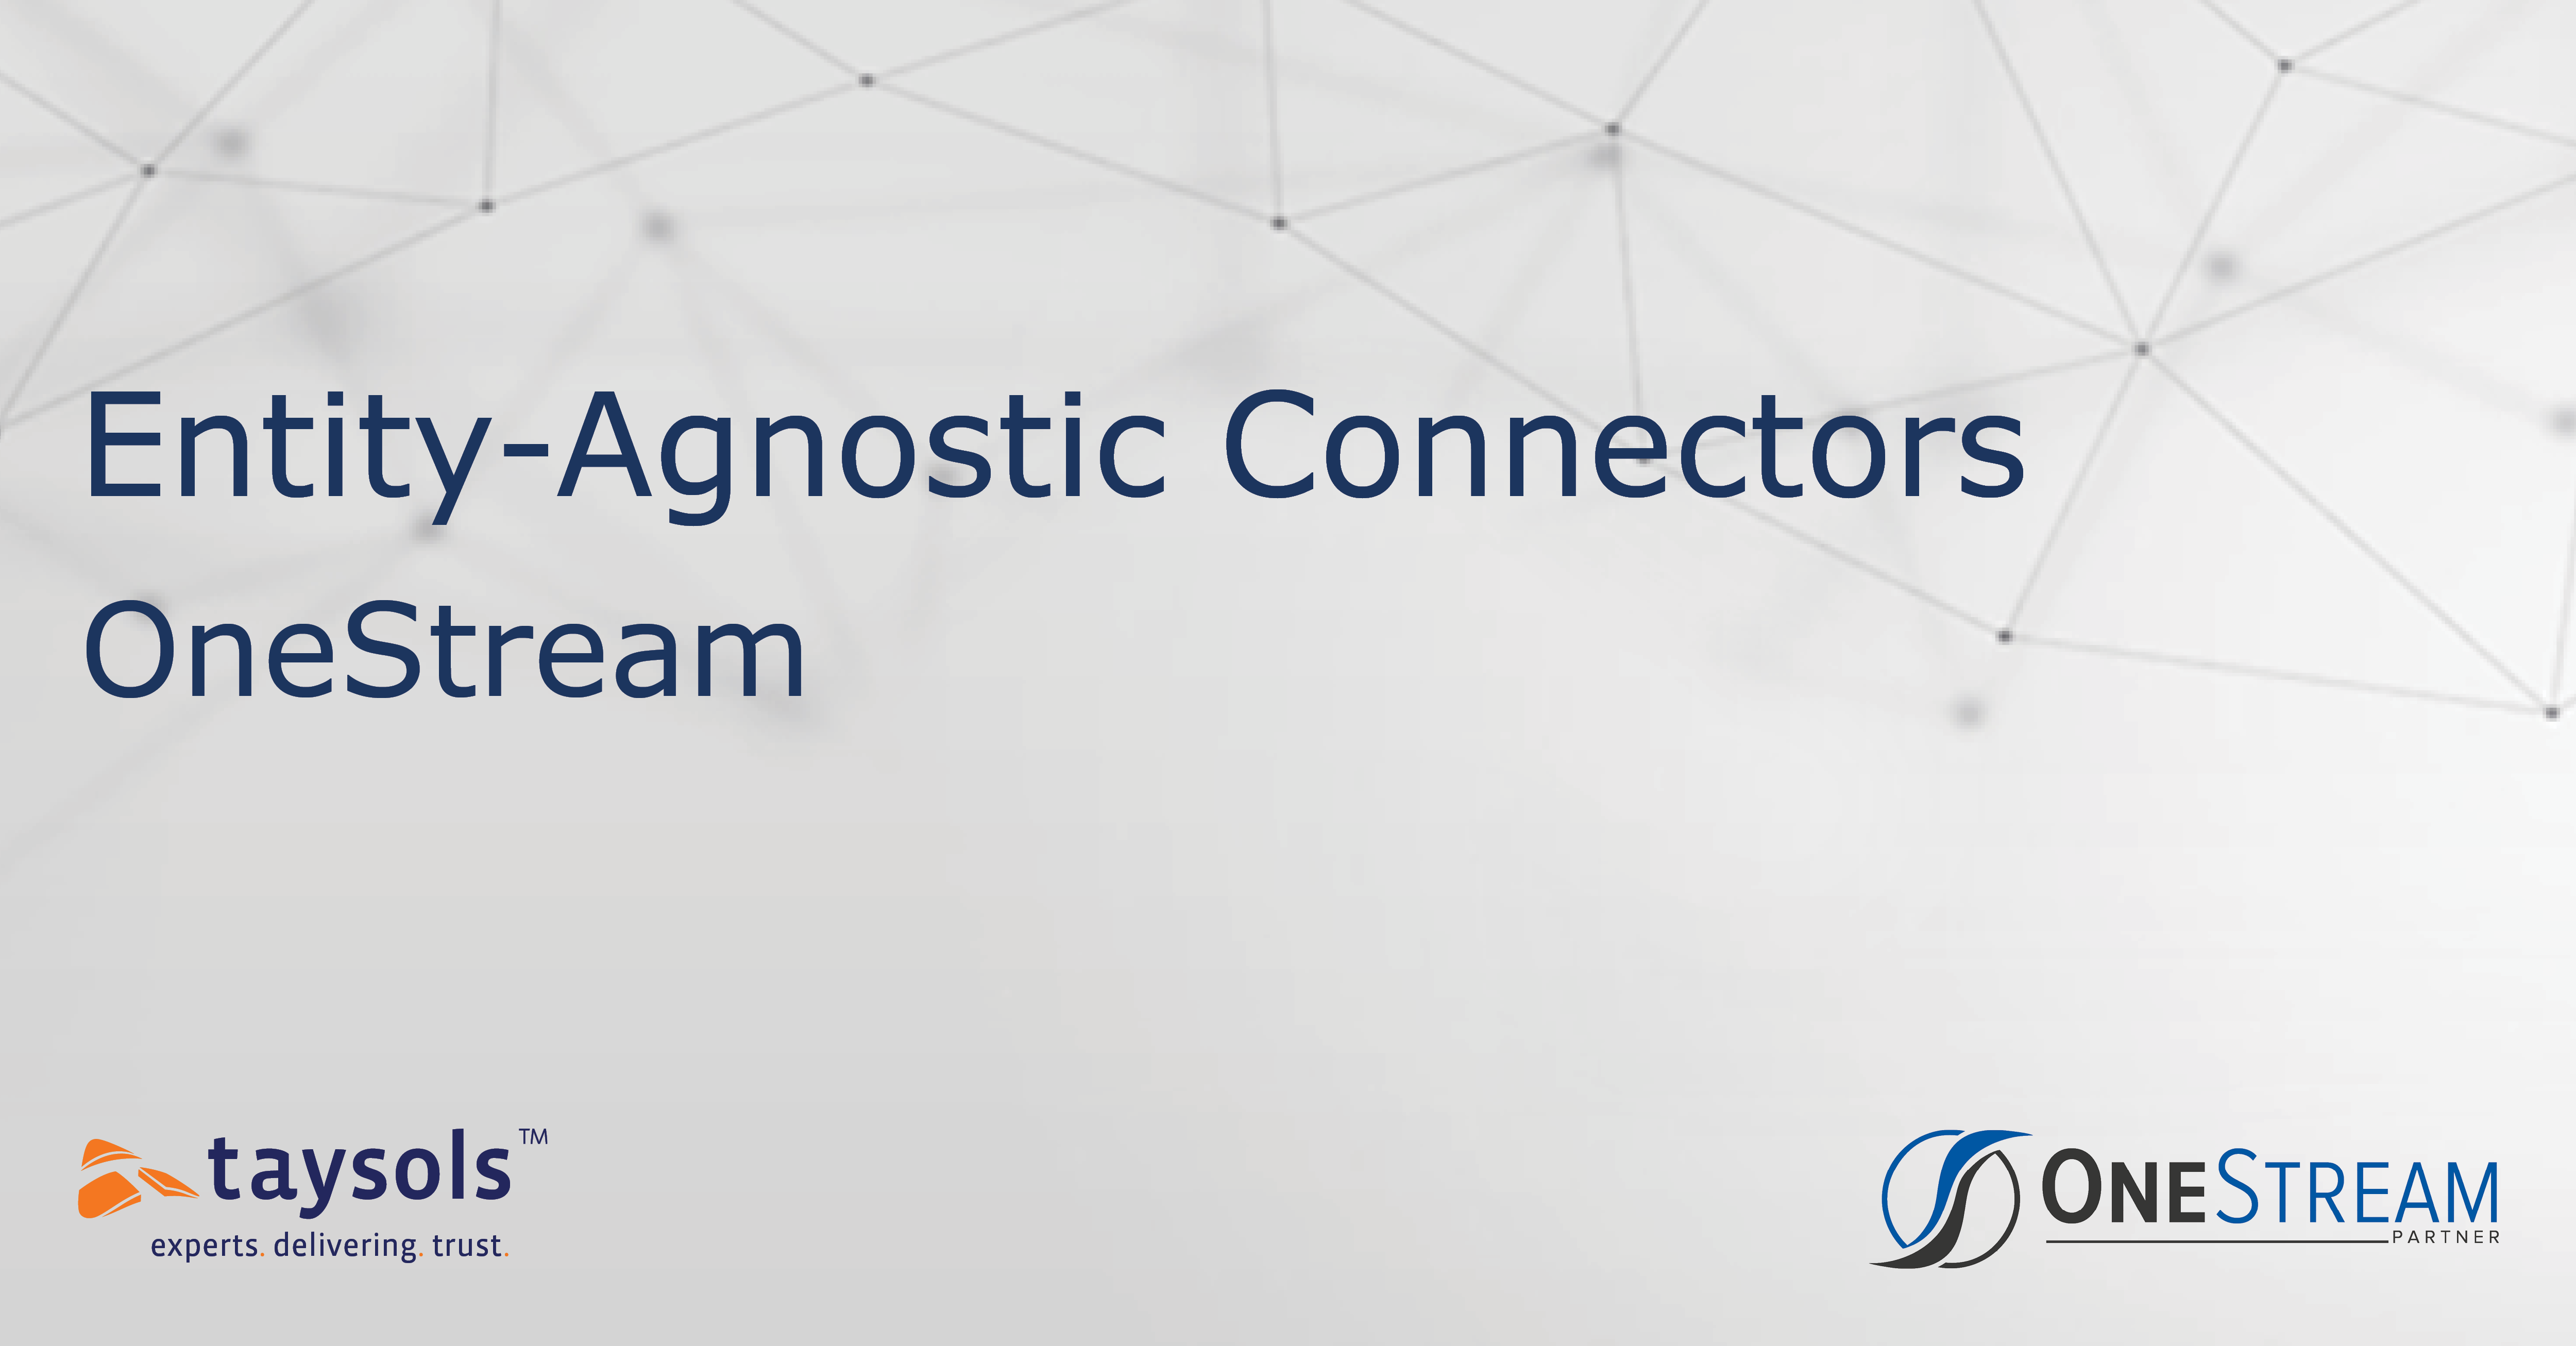 OneStream: Entity-Agnostic Connectors